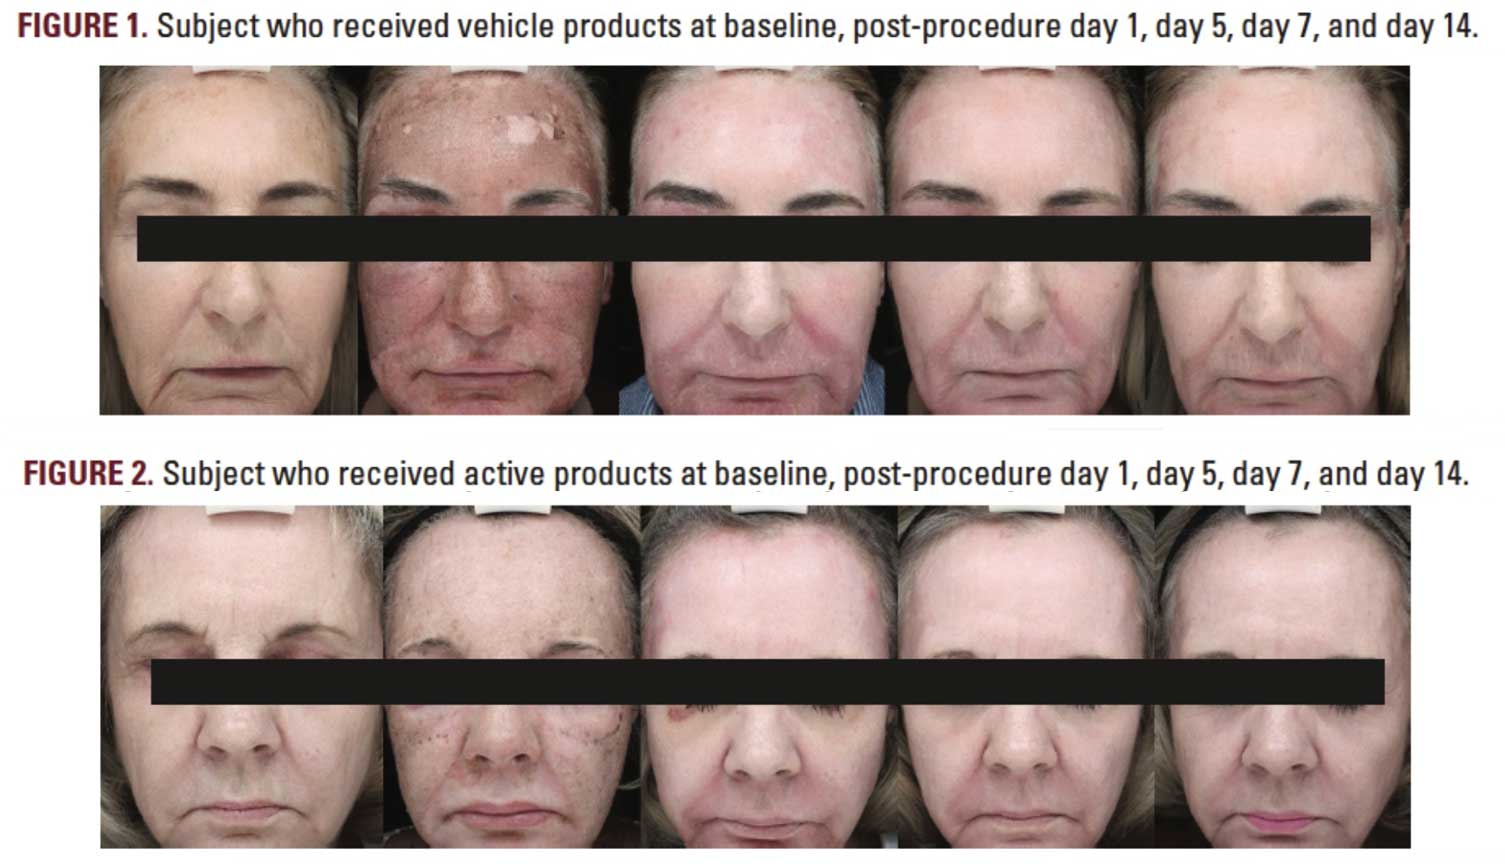 Subject who received vehicle VS active products at baseline, post-procedure day 1, day 5, day 7 and day 14